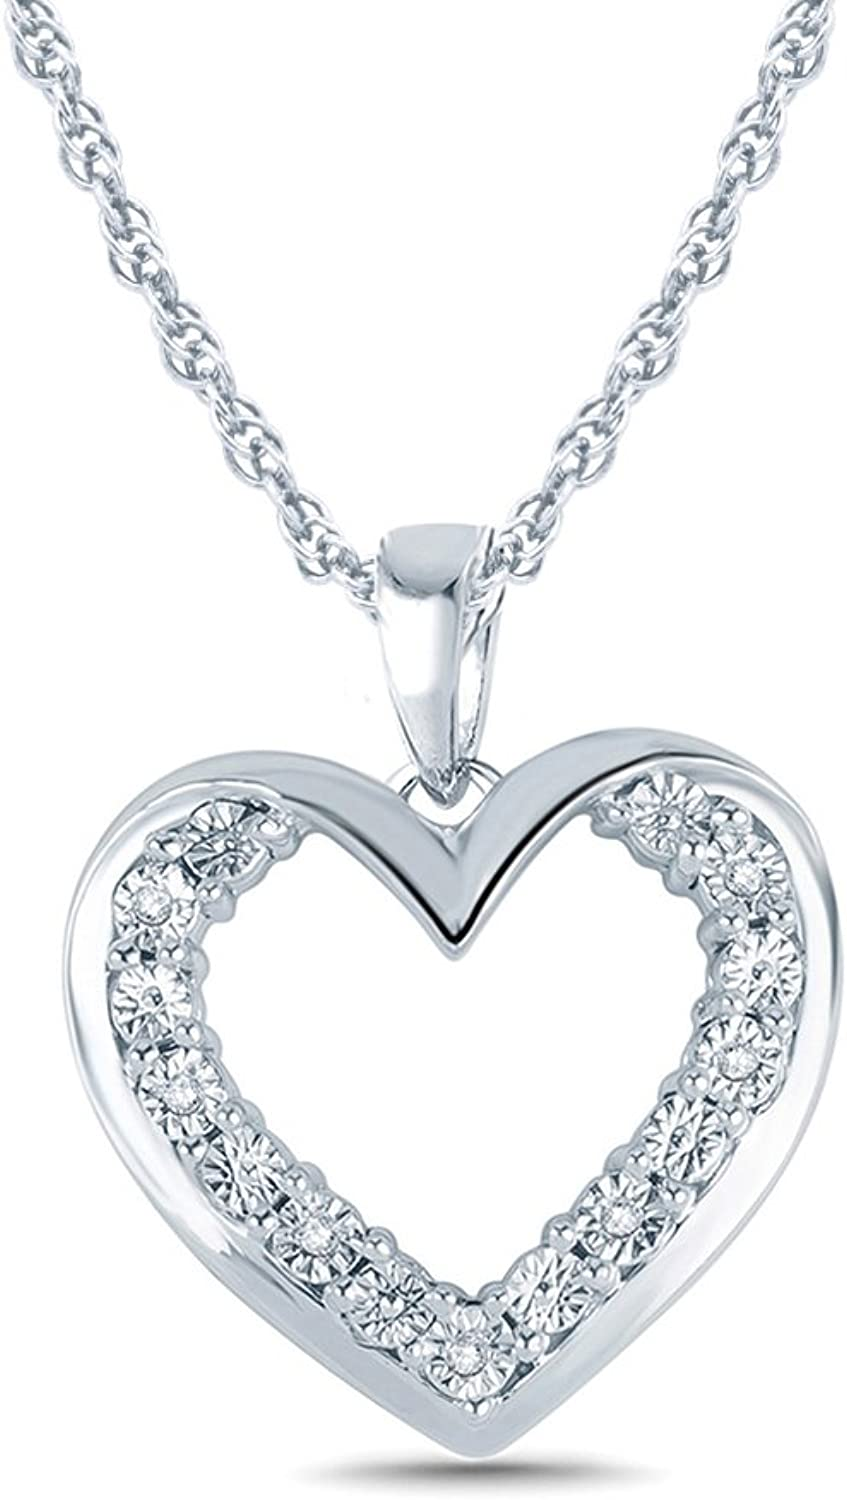 1 20CTTW Sterling Silver Miracle Plate Diamond Double Heart Pendant Necklace (IJ, I2I3)18